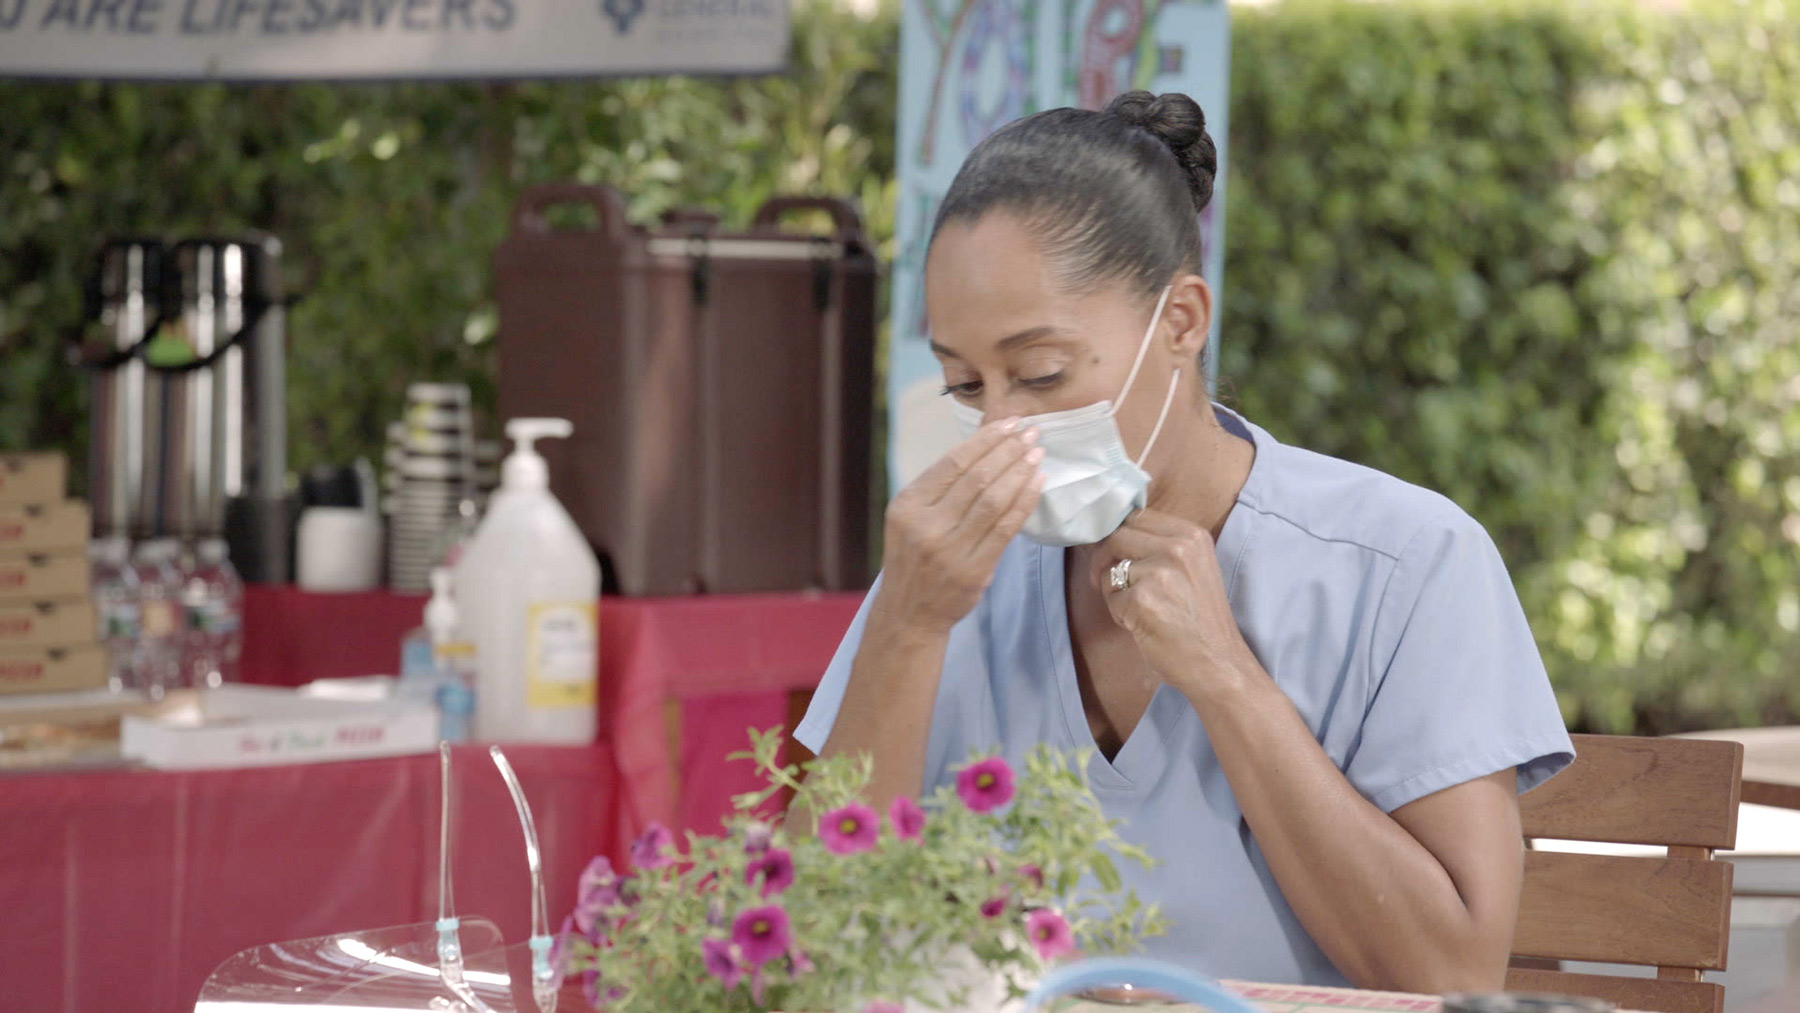 """BLACK-ISH - """"Hero Pizza"""" - The season premiere of """"black-ish"""" takes us to the beginning of the global pandemic for the Johnsons. As a first responder, Bow receives her family's praise for her work, with Junior being her biggest fan. But over time, the family loses their enthusiasm, and Bow discovers someone in her house is breaking the quarantine lockdown rules. Meanwhile, Dre tries to convince everyone that he too is an essential worker, WEDNESDAY, OCT. 21 (9:30-10:00 p.m. EDT), on ABC.(ABC)TRACEE ELLIS ROSS"""